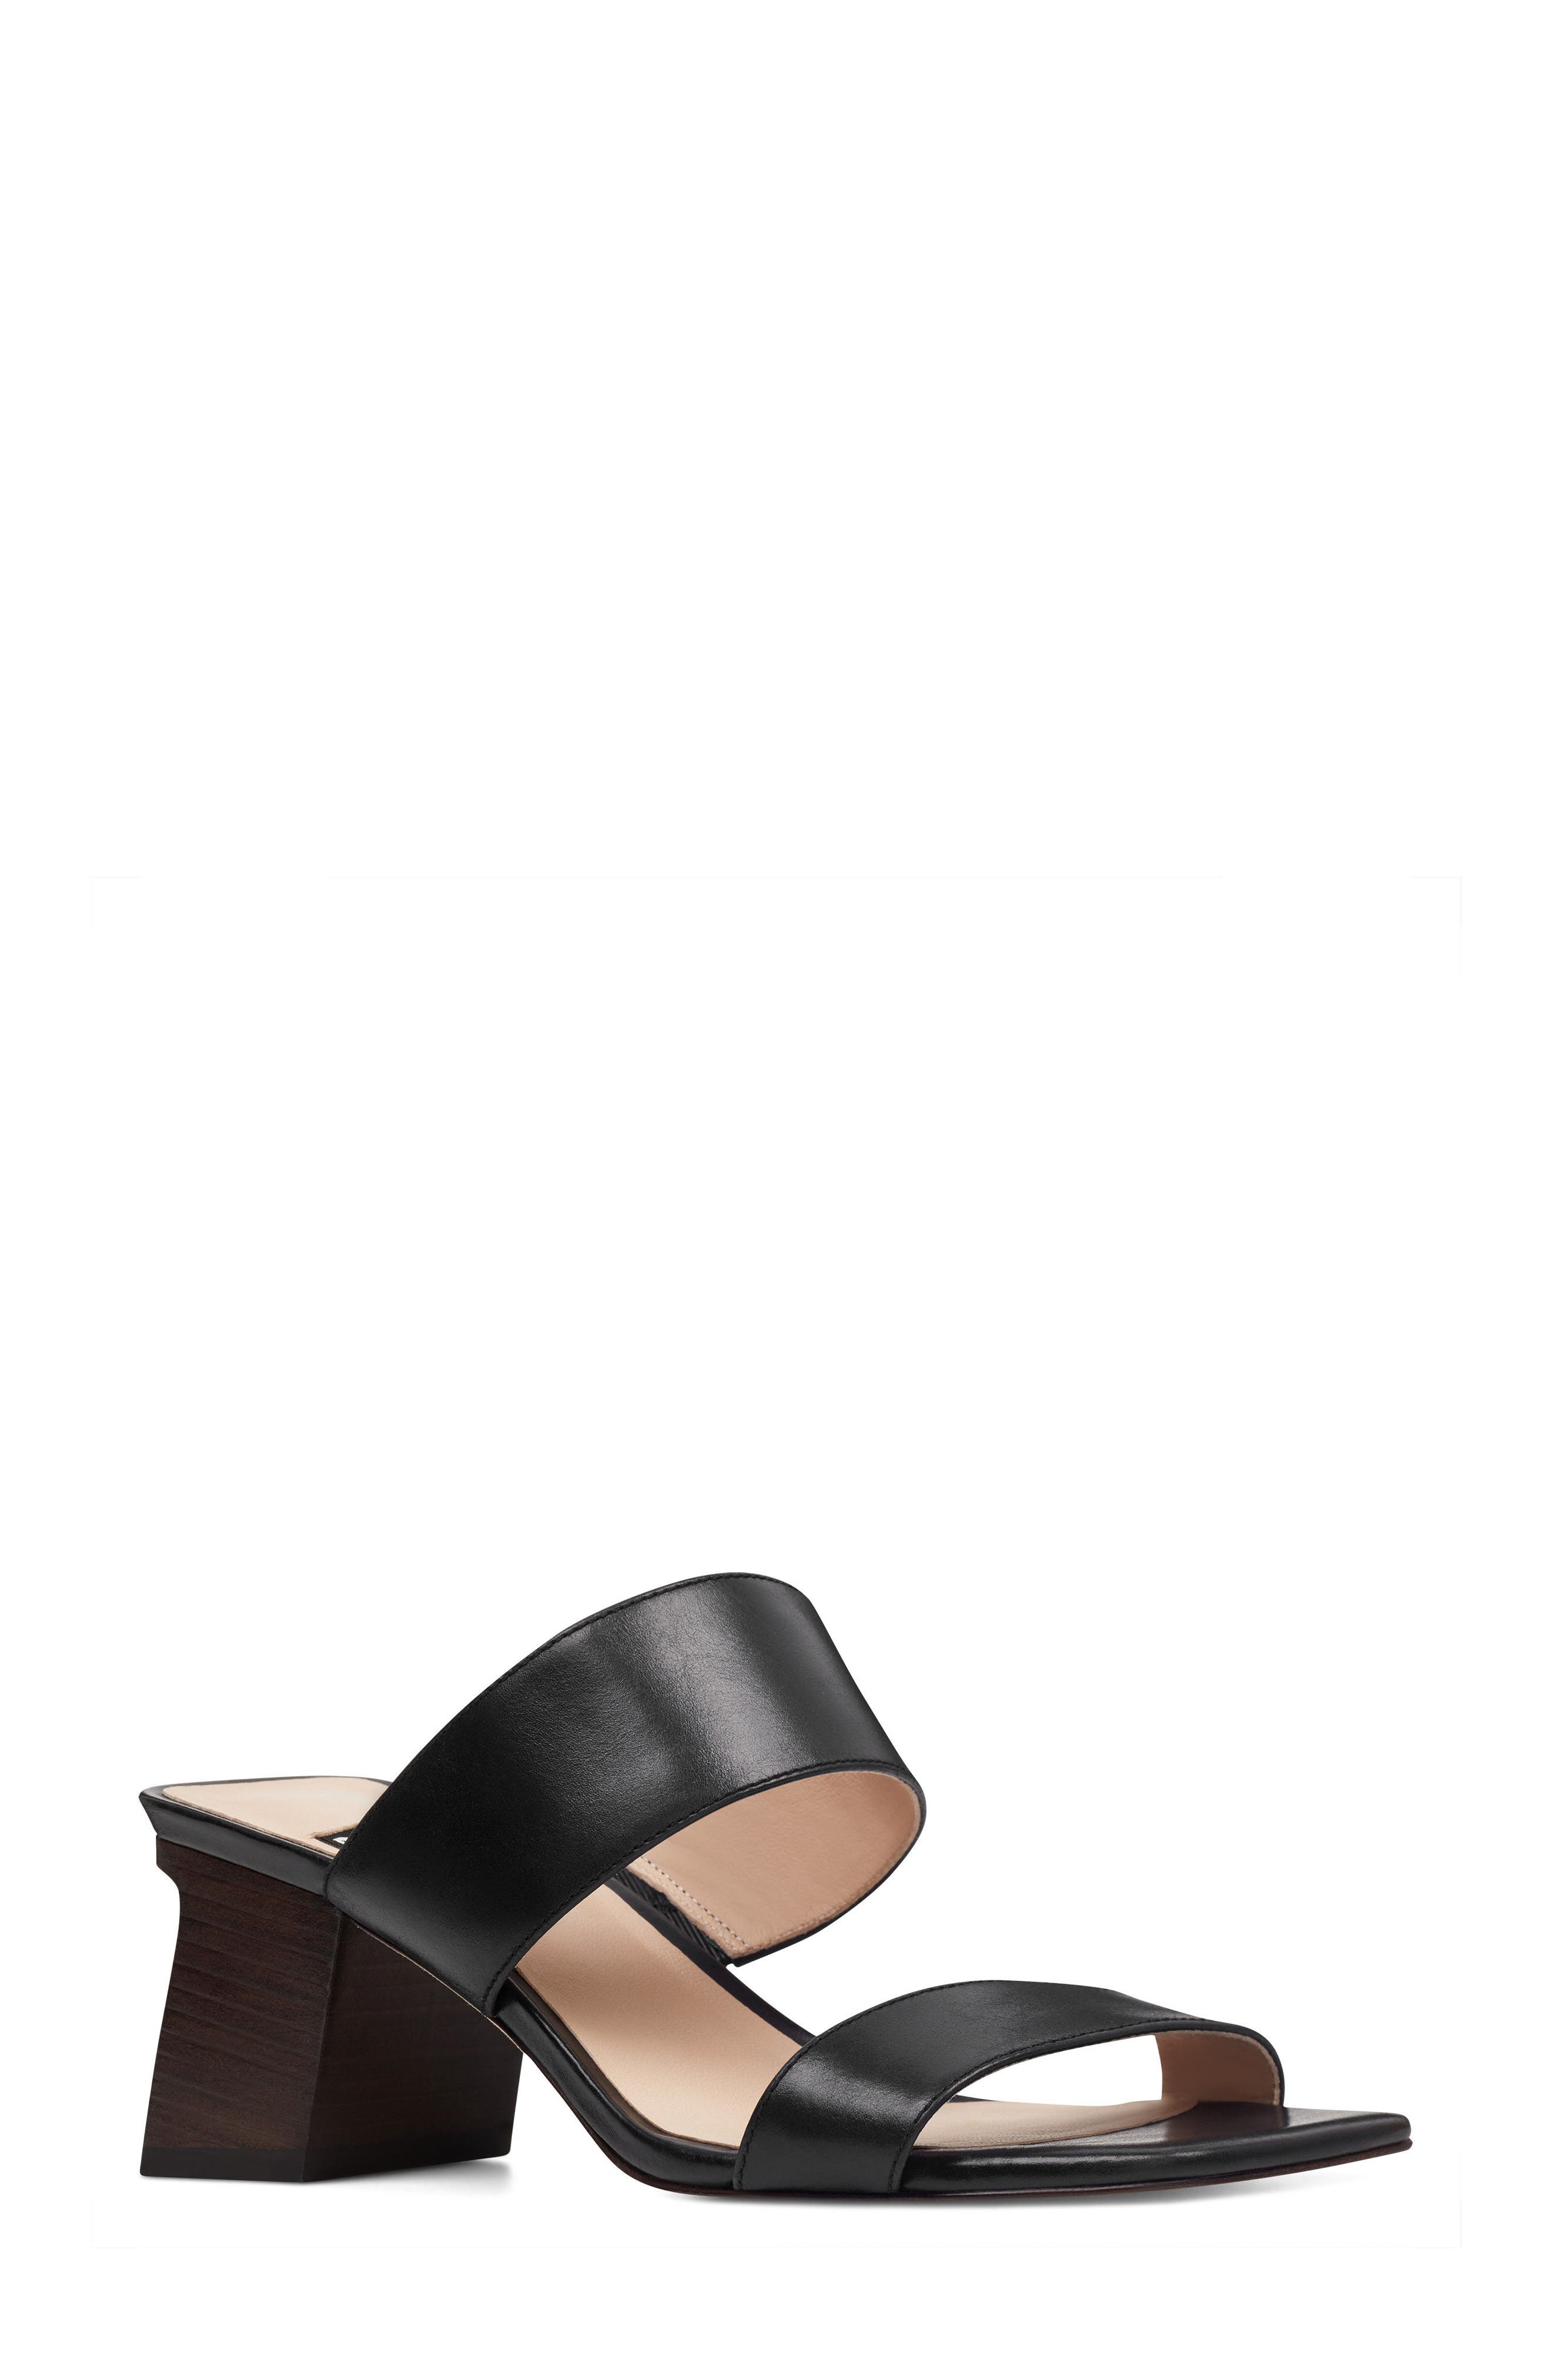 Churen - 40th Anniversary Capsule Collection Sandal,                         Main,                         color, BLACK LEATHER